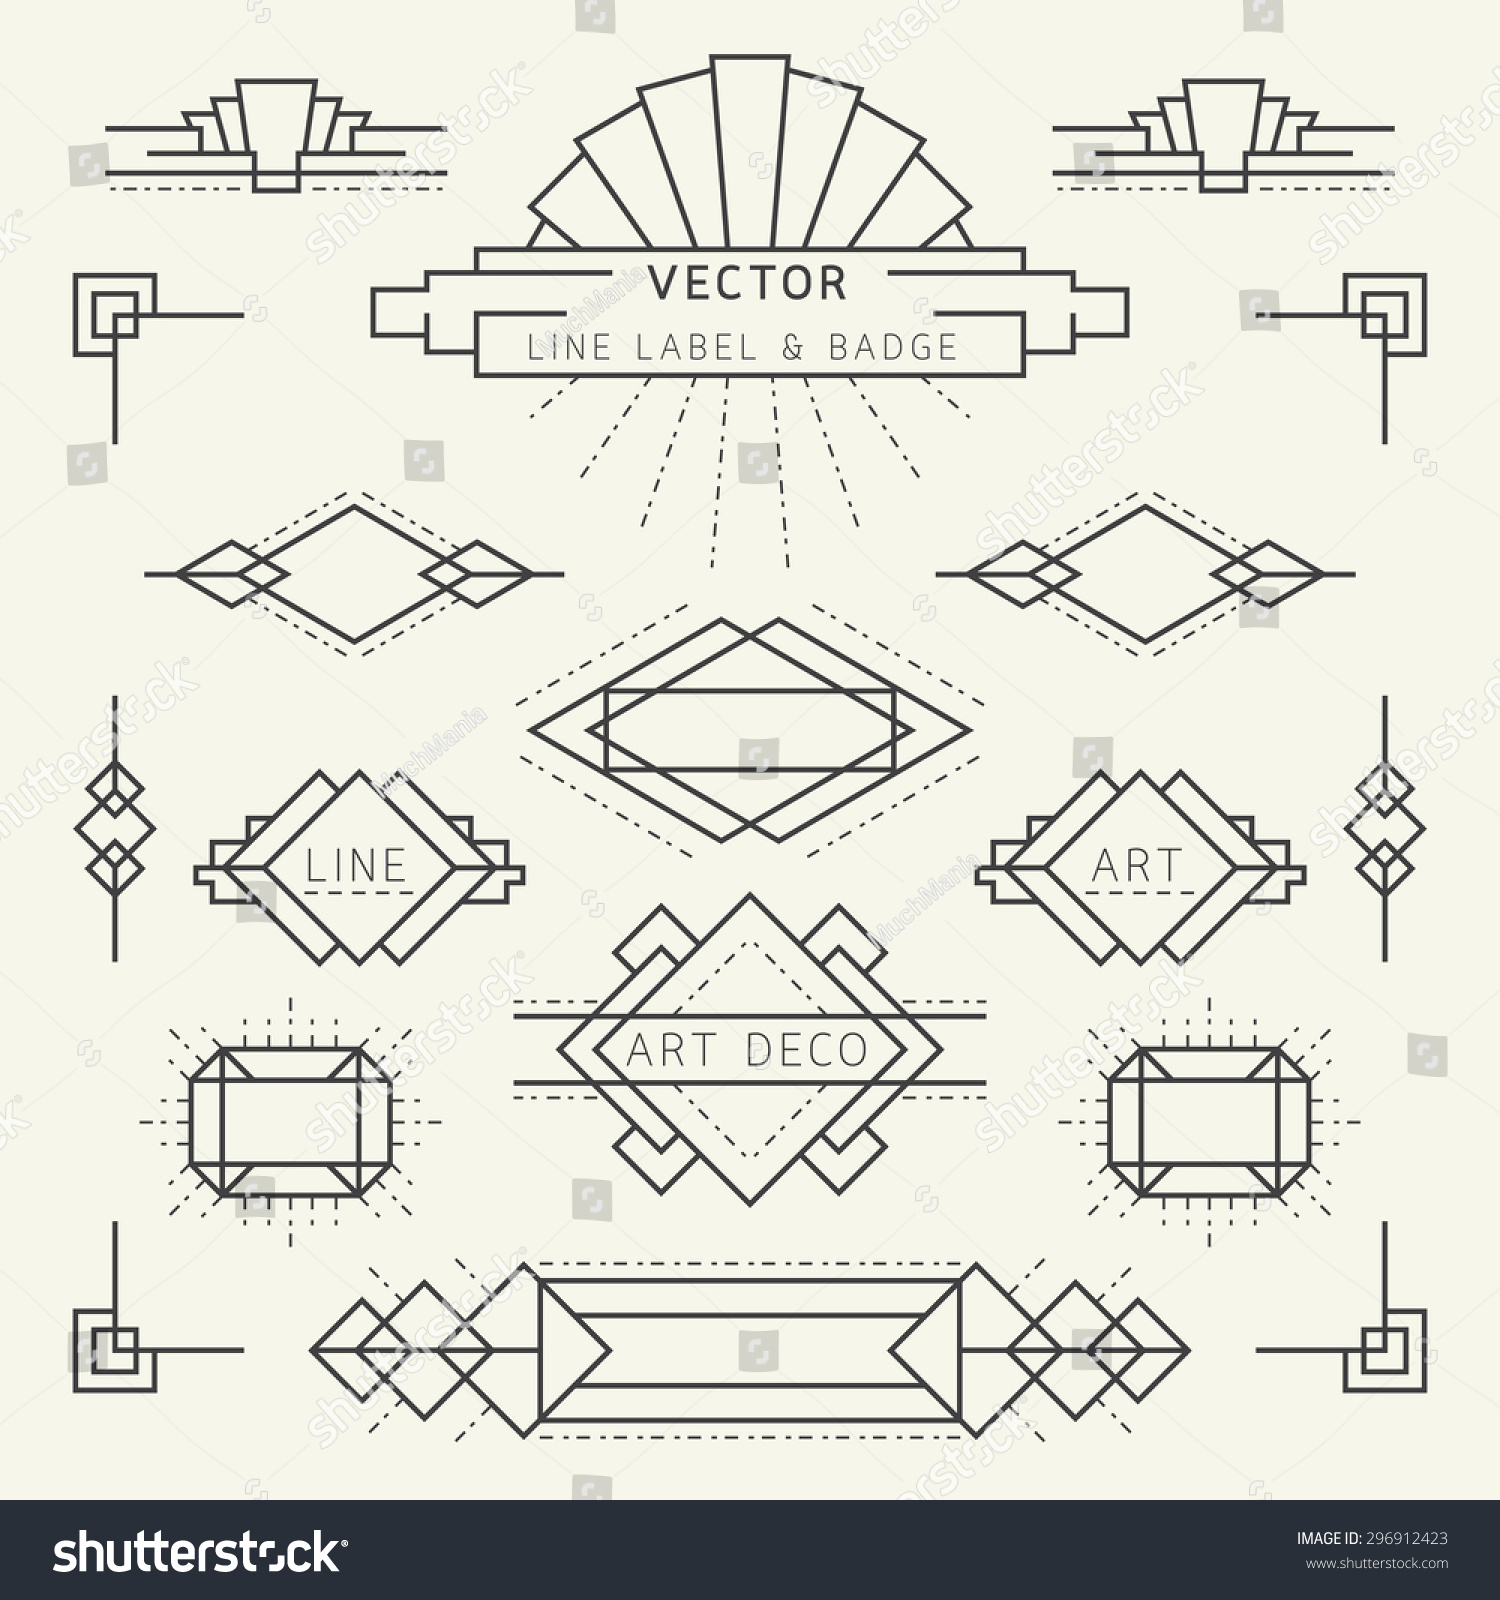 Art Deco Style Line And Geometric Labels And Badges Monochrome Linear